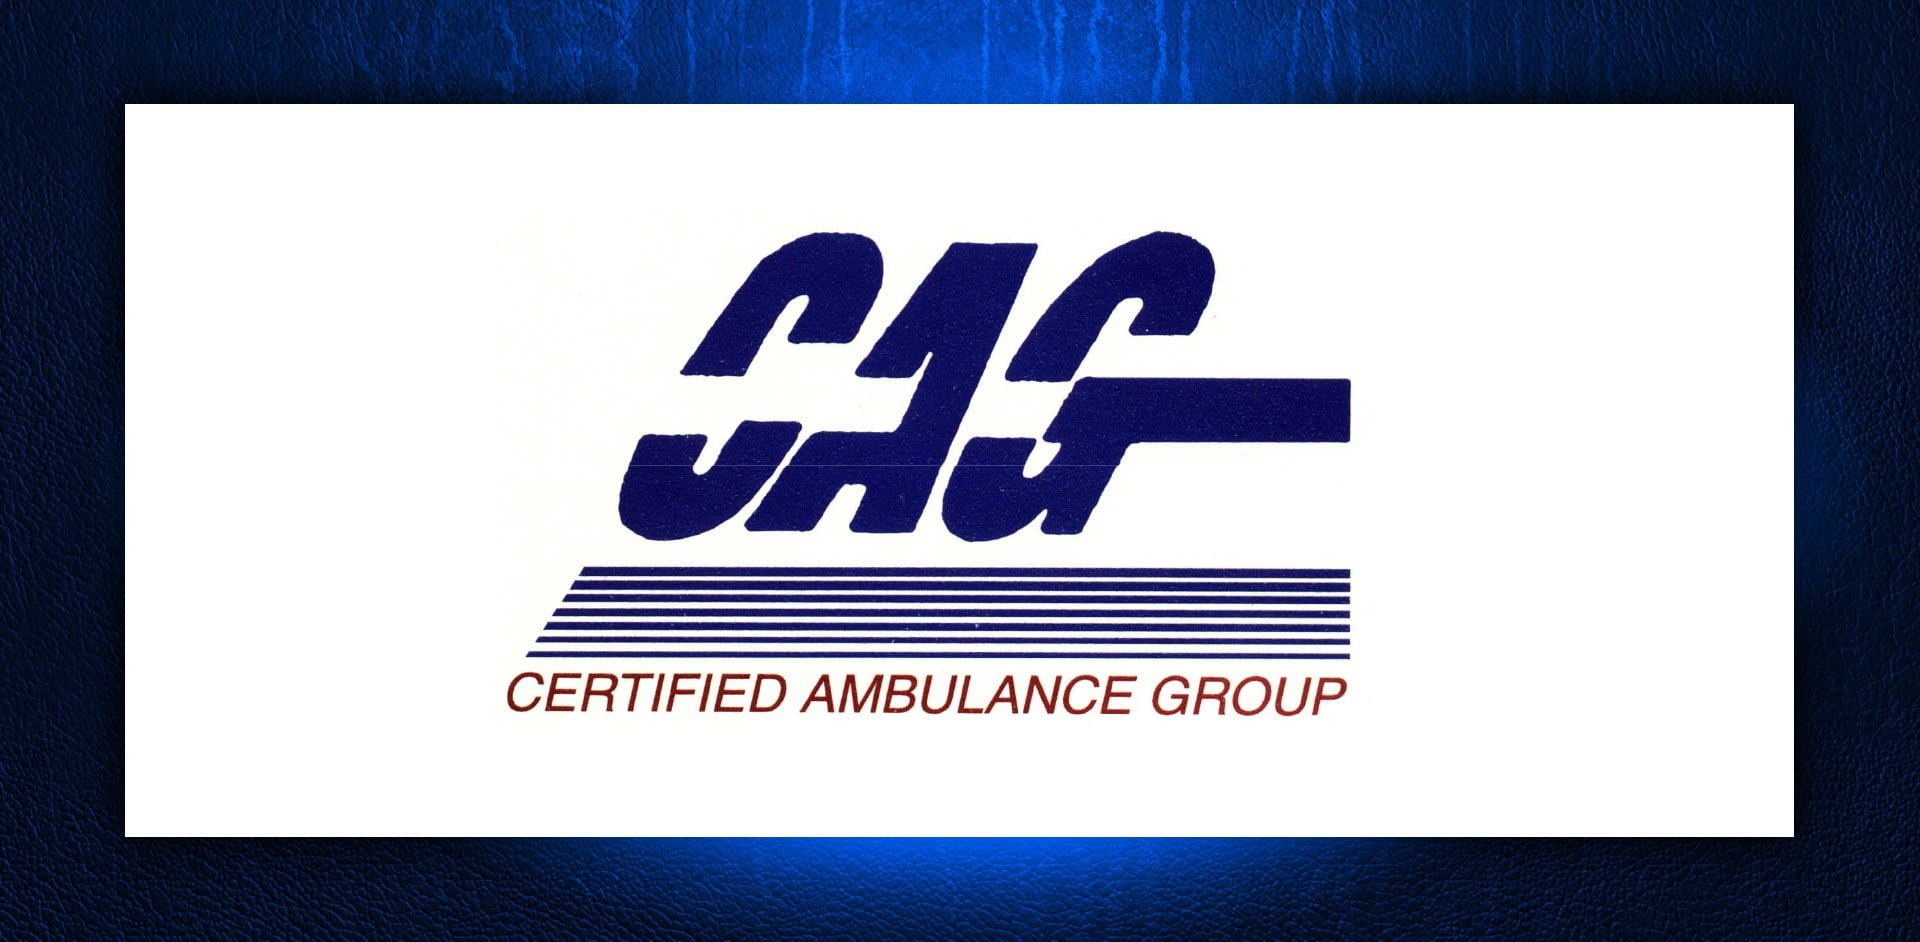 Certified Ambulance Group, Inc